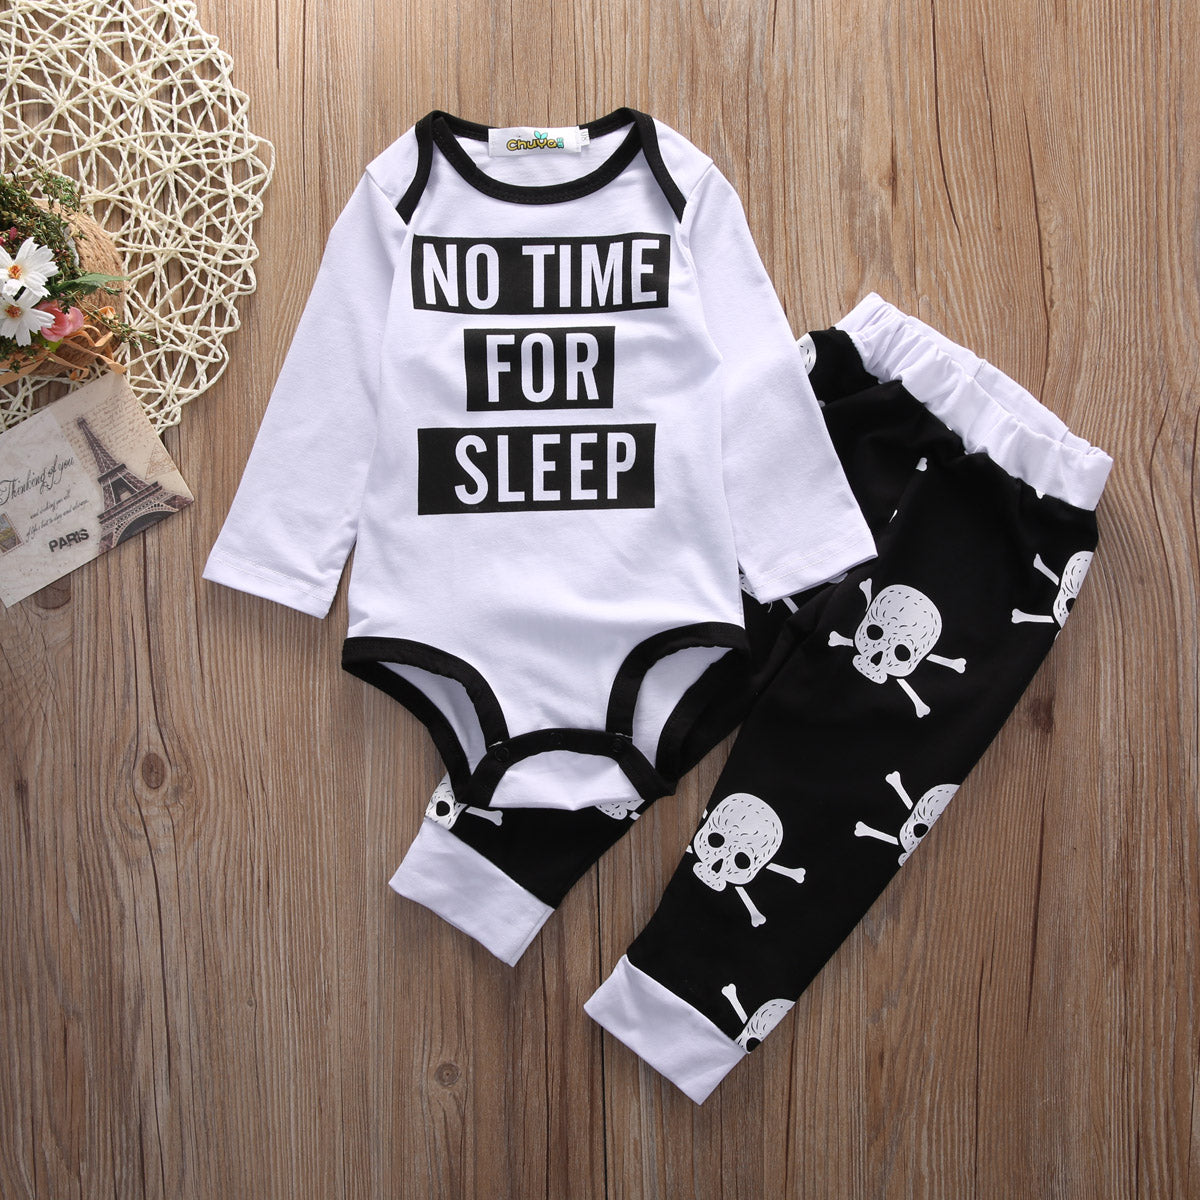 No Time For Sleep Baby Outfit